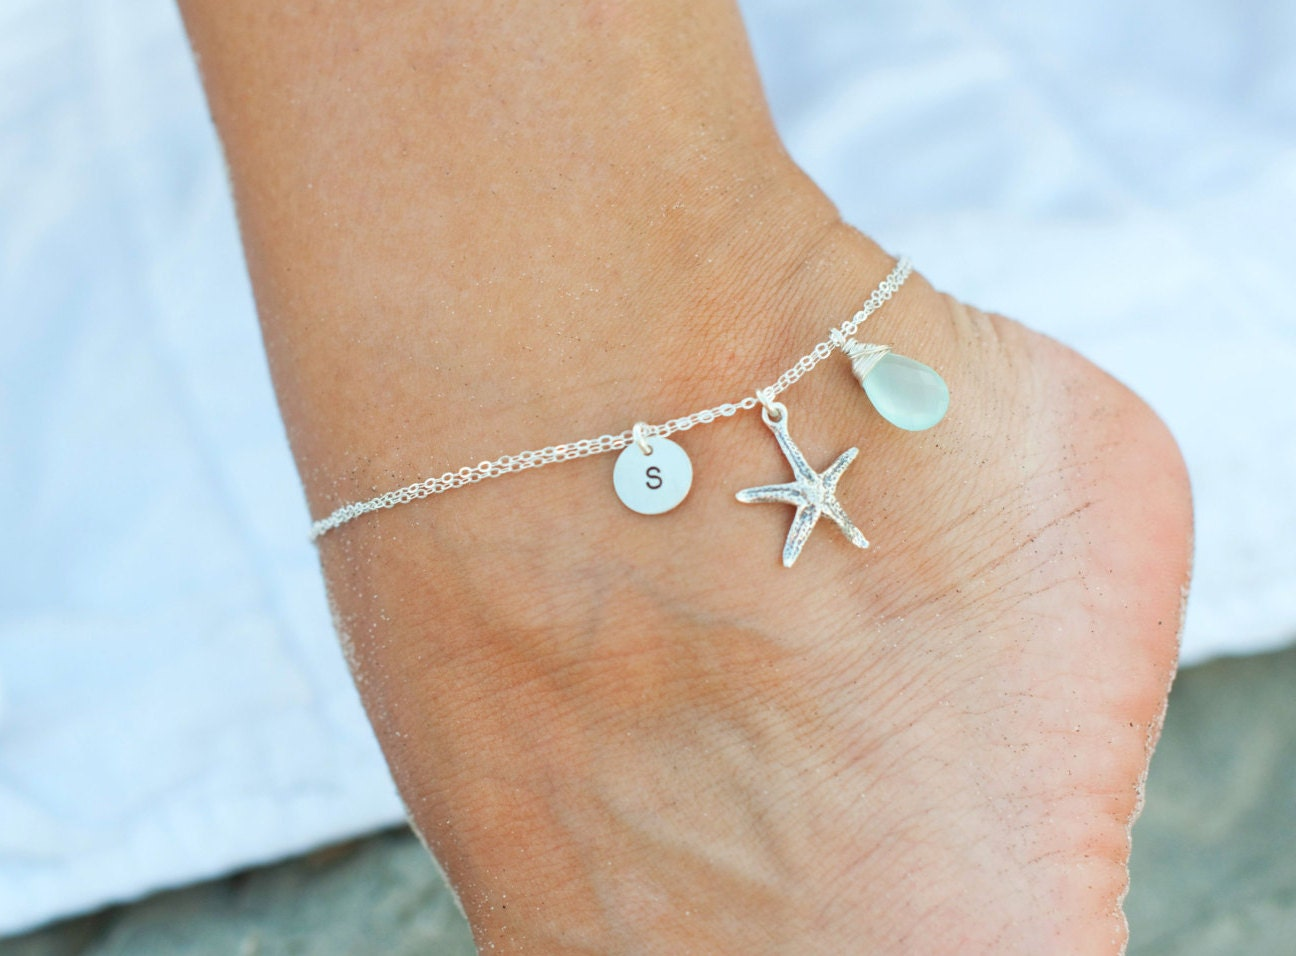 chain beauty wedding silver ankle charm bracelet uk drop co crystal bracelets dp amazon with anklet celeb jewelry charms